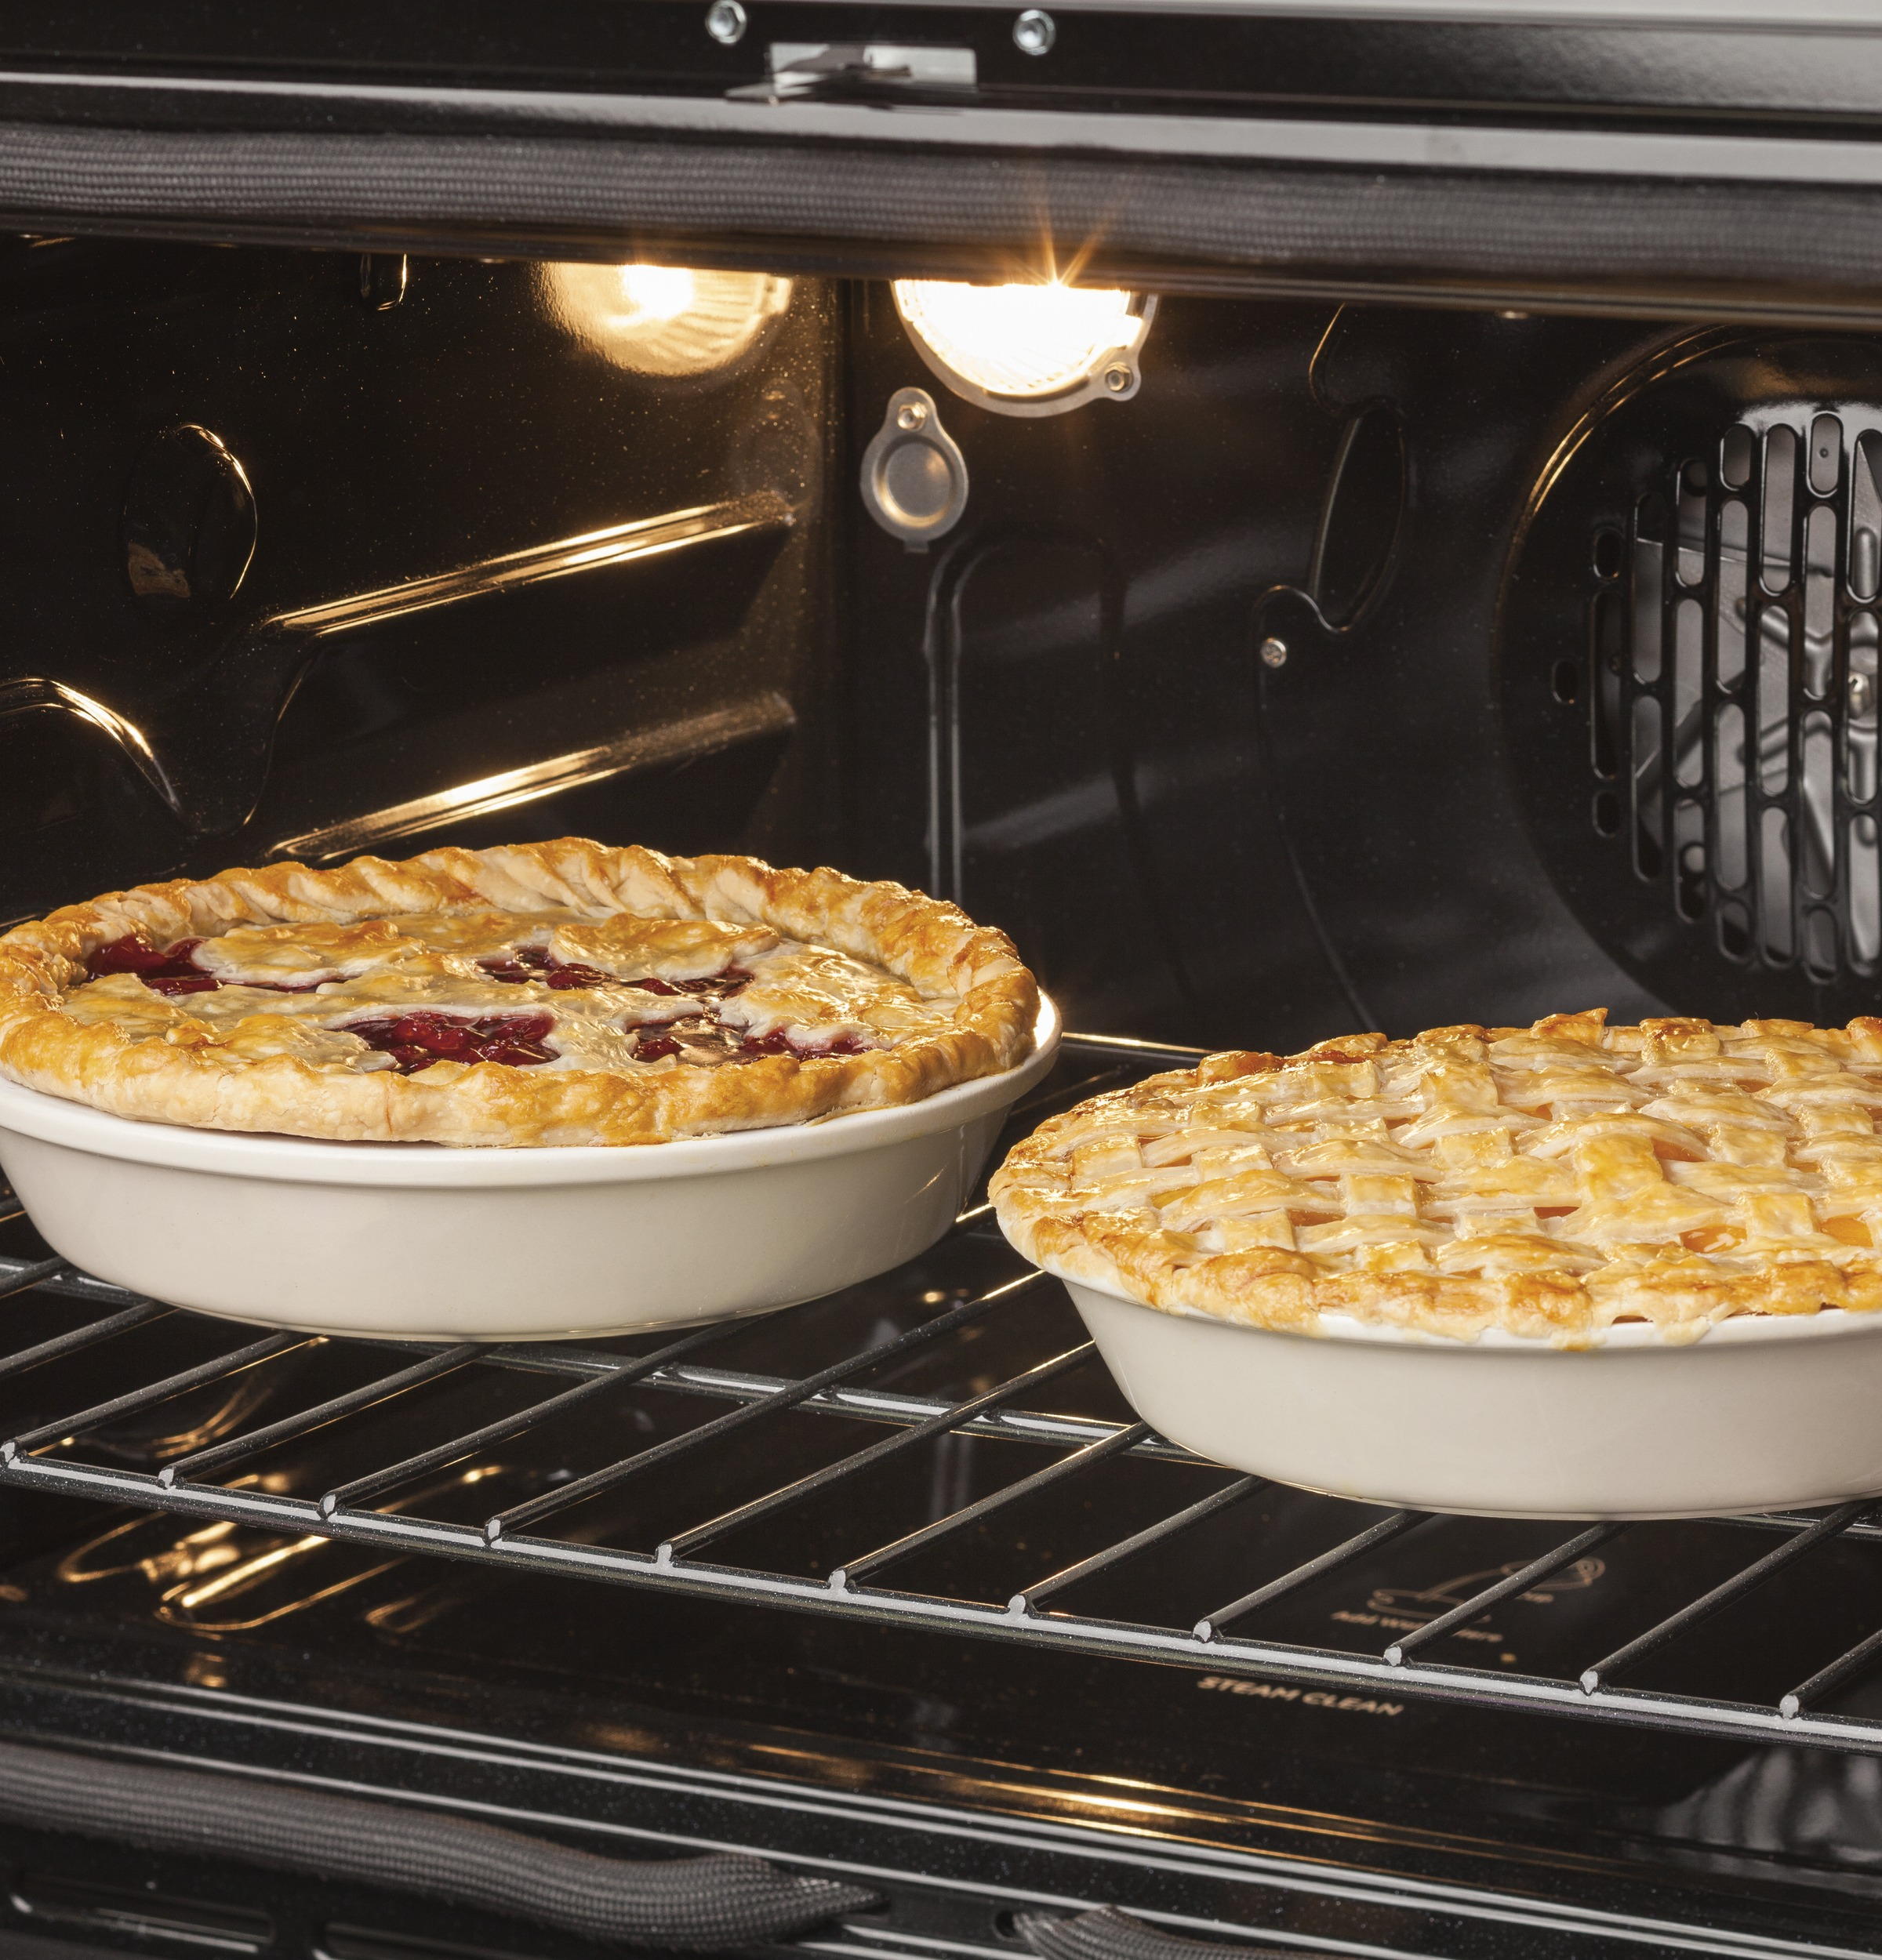 """Model: PB980SJSS 